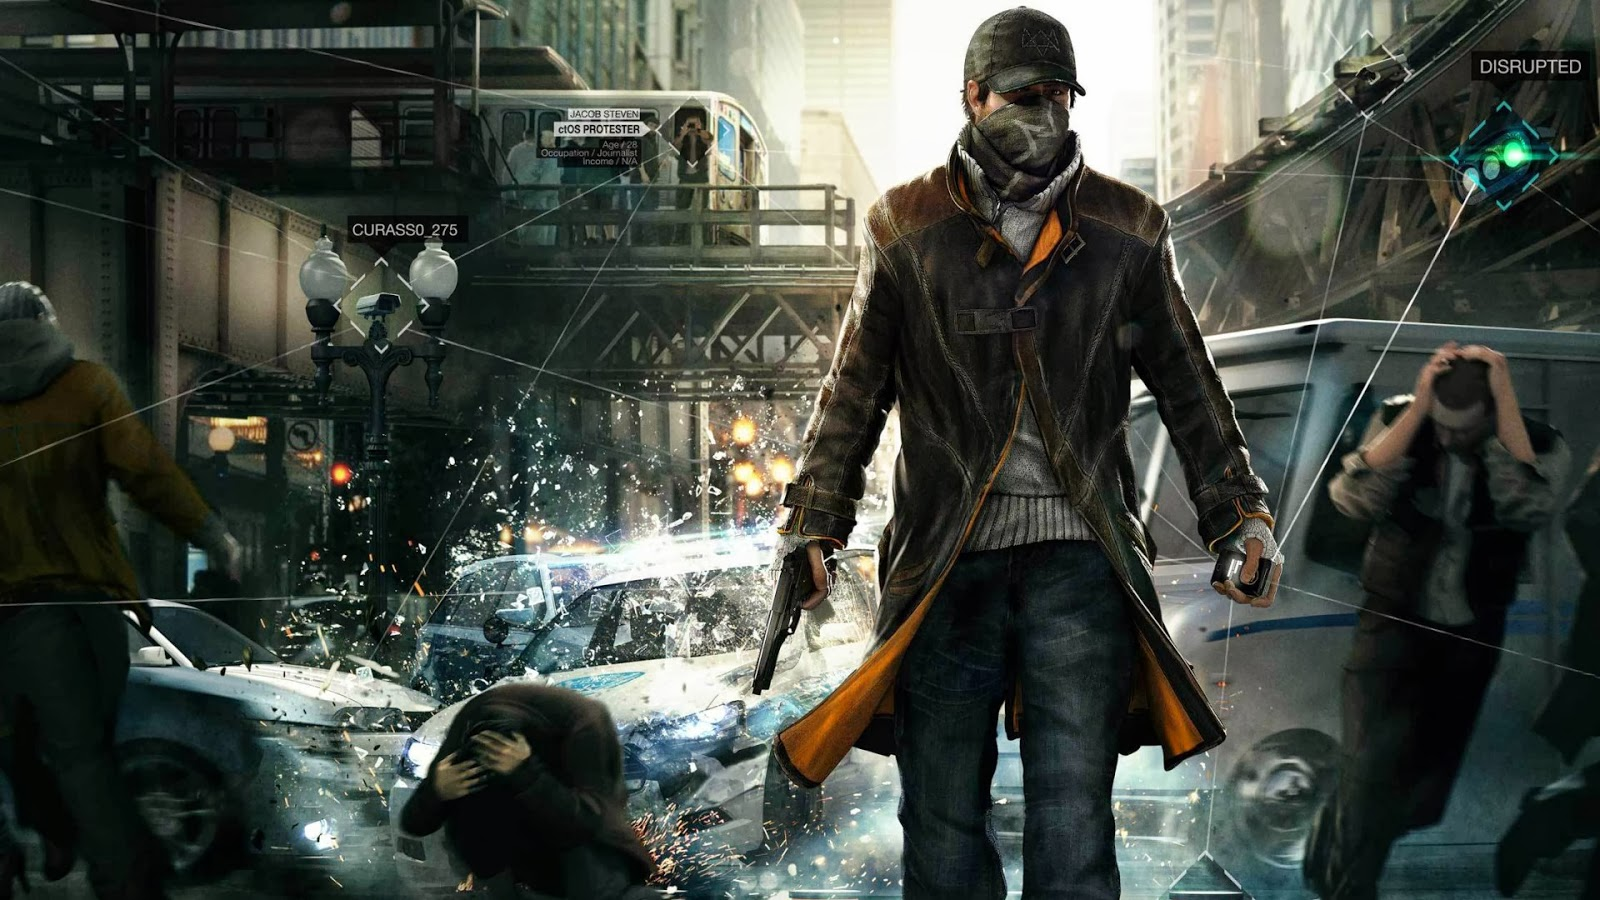 Gta 5 Cool Cars Wallpapers Watch Dogs Hd Wallpapers Walls720